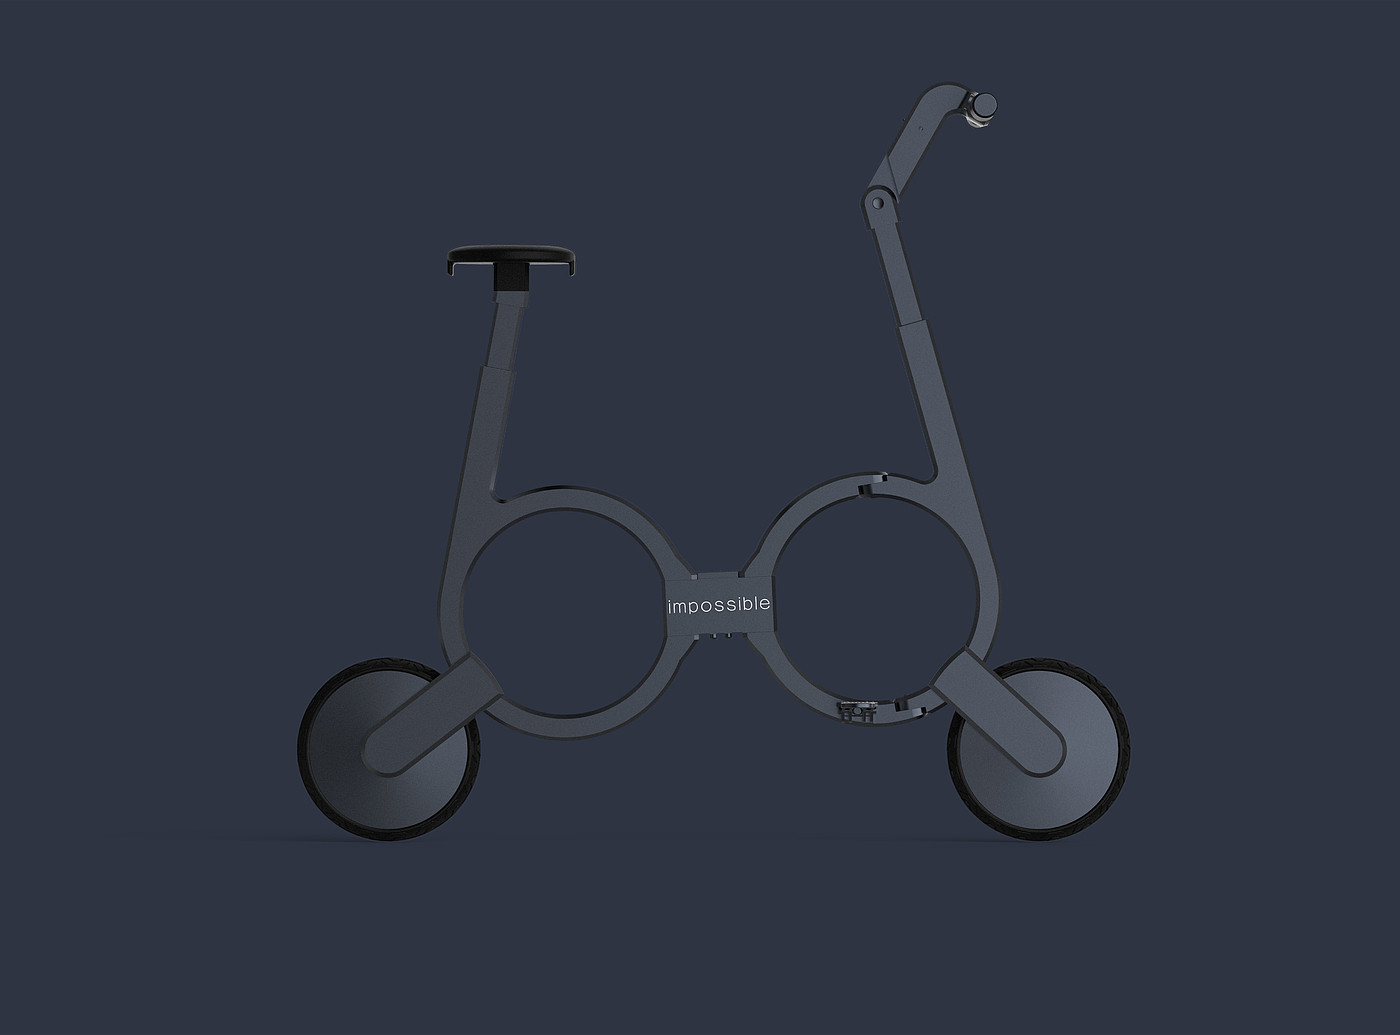 IMPOSSIBLE BIKE-品向网